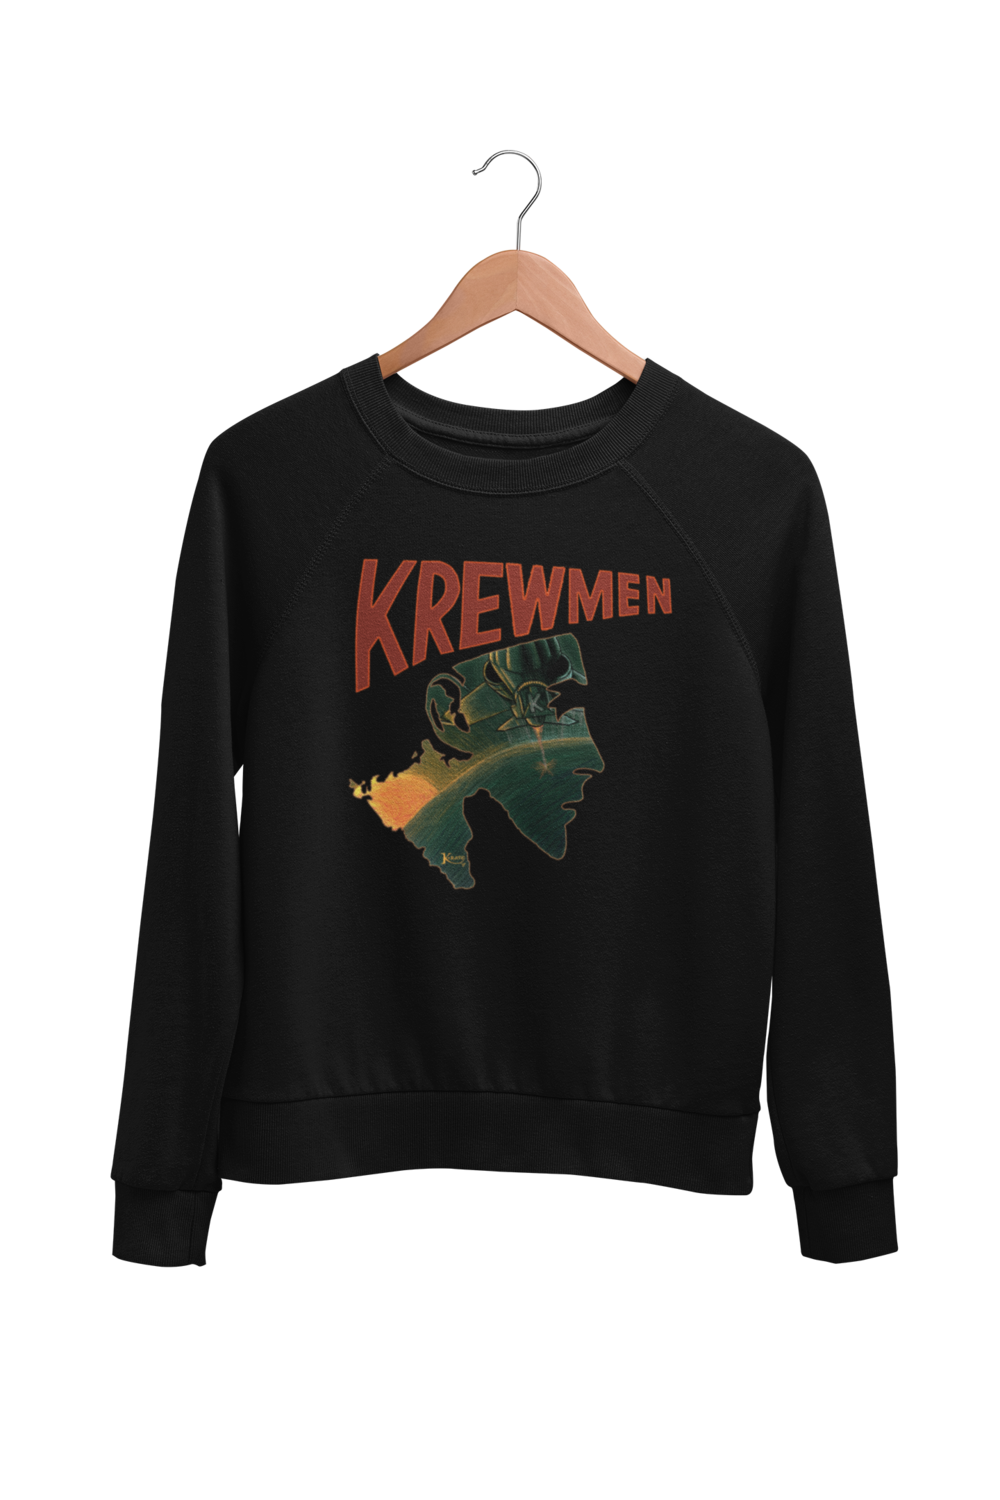 KREWMEN LOGO SWEATSHIRT by KING RAT DESIGN UNISEX